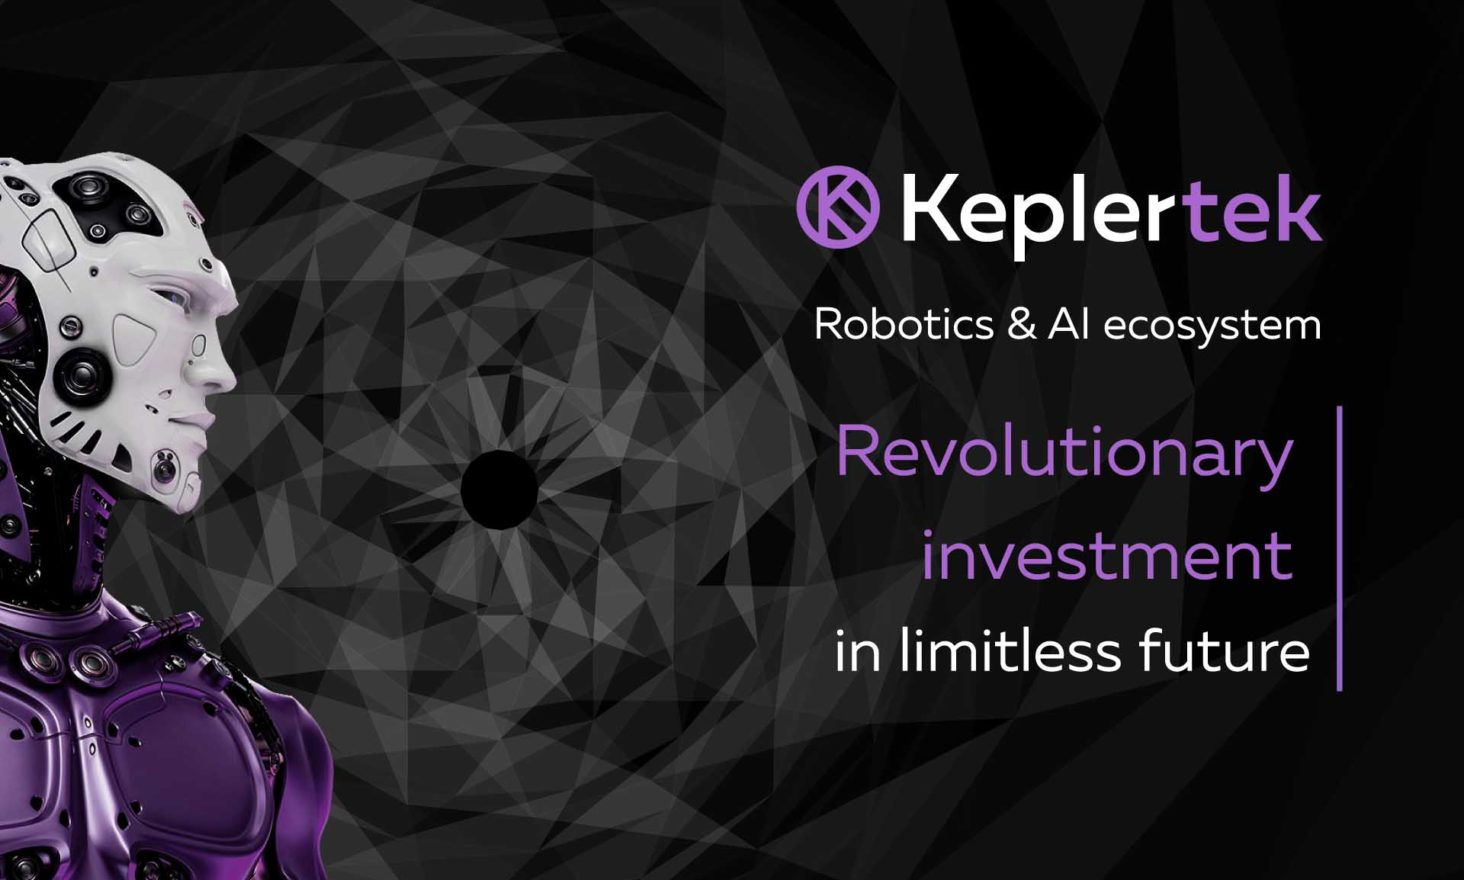 Kepler Technologies - Highest Rated ICO About to Start Pre-Sale